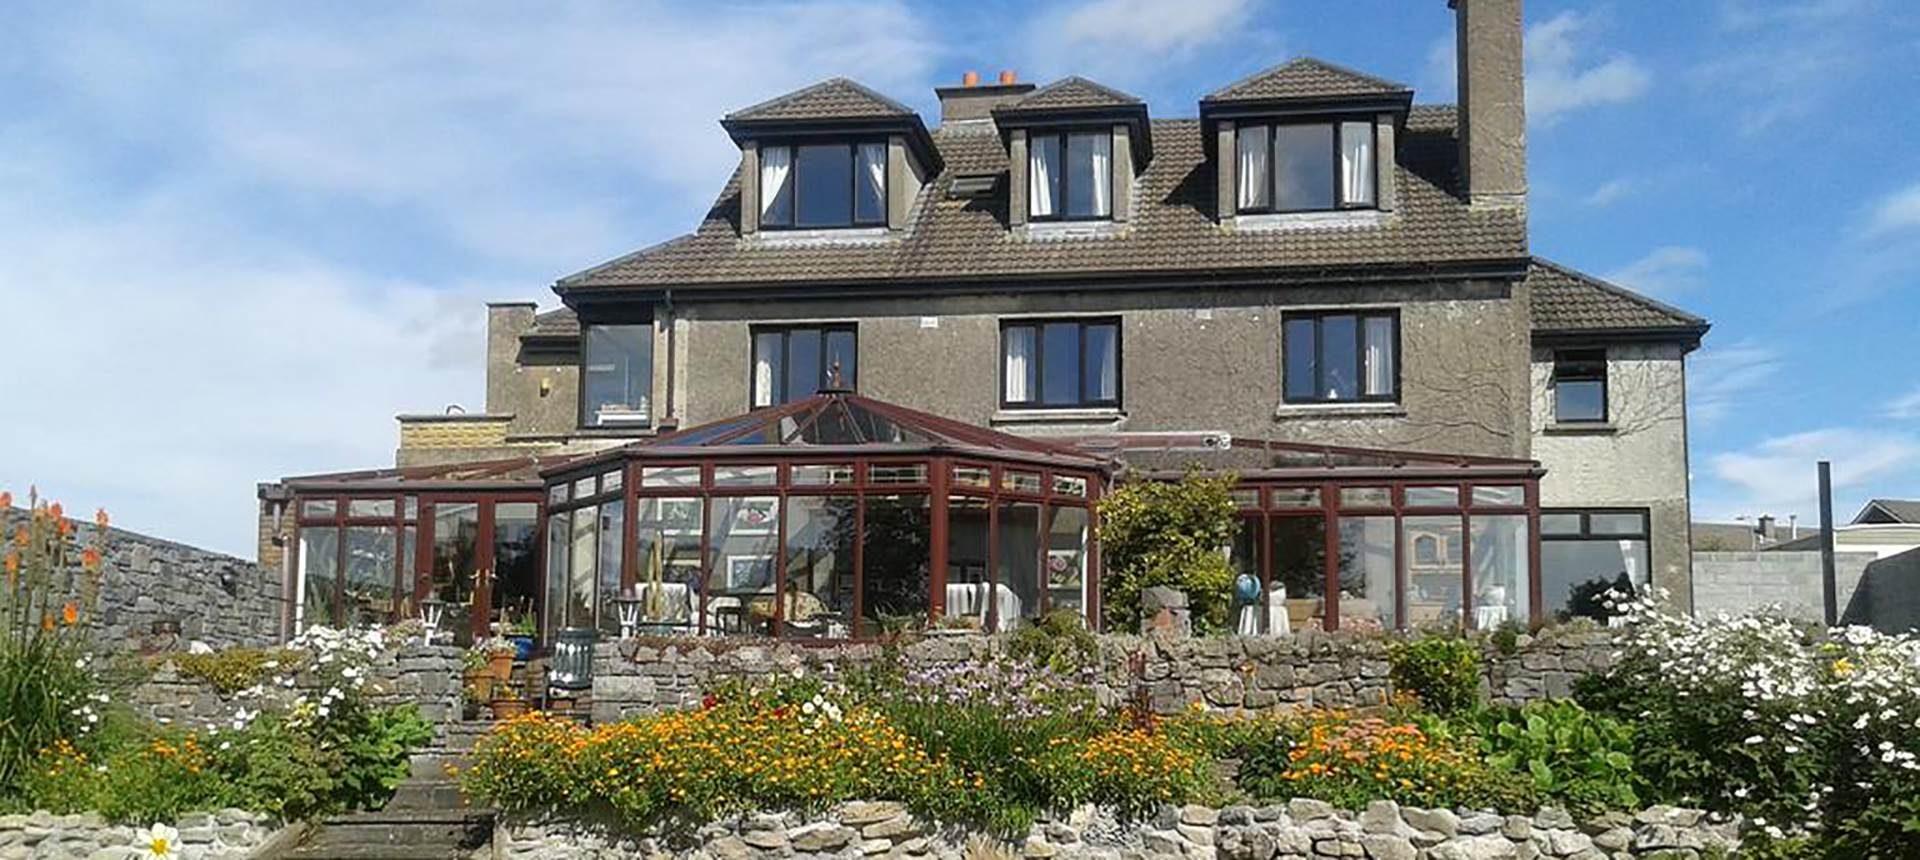 Four Winds Lodge Bed and Breakfast Galway Ireland